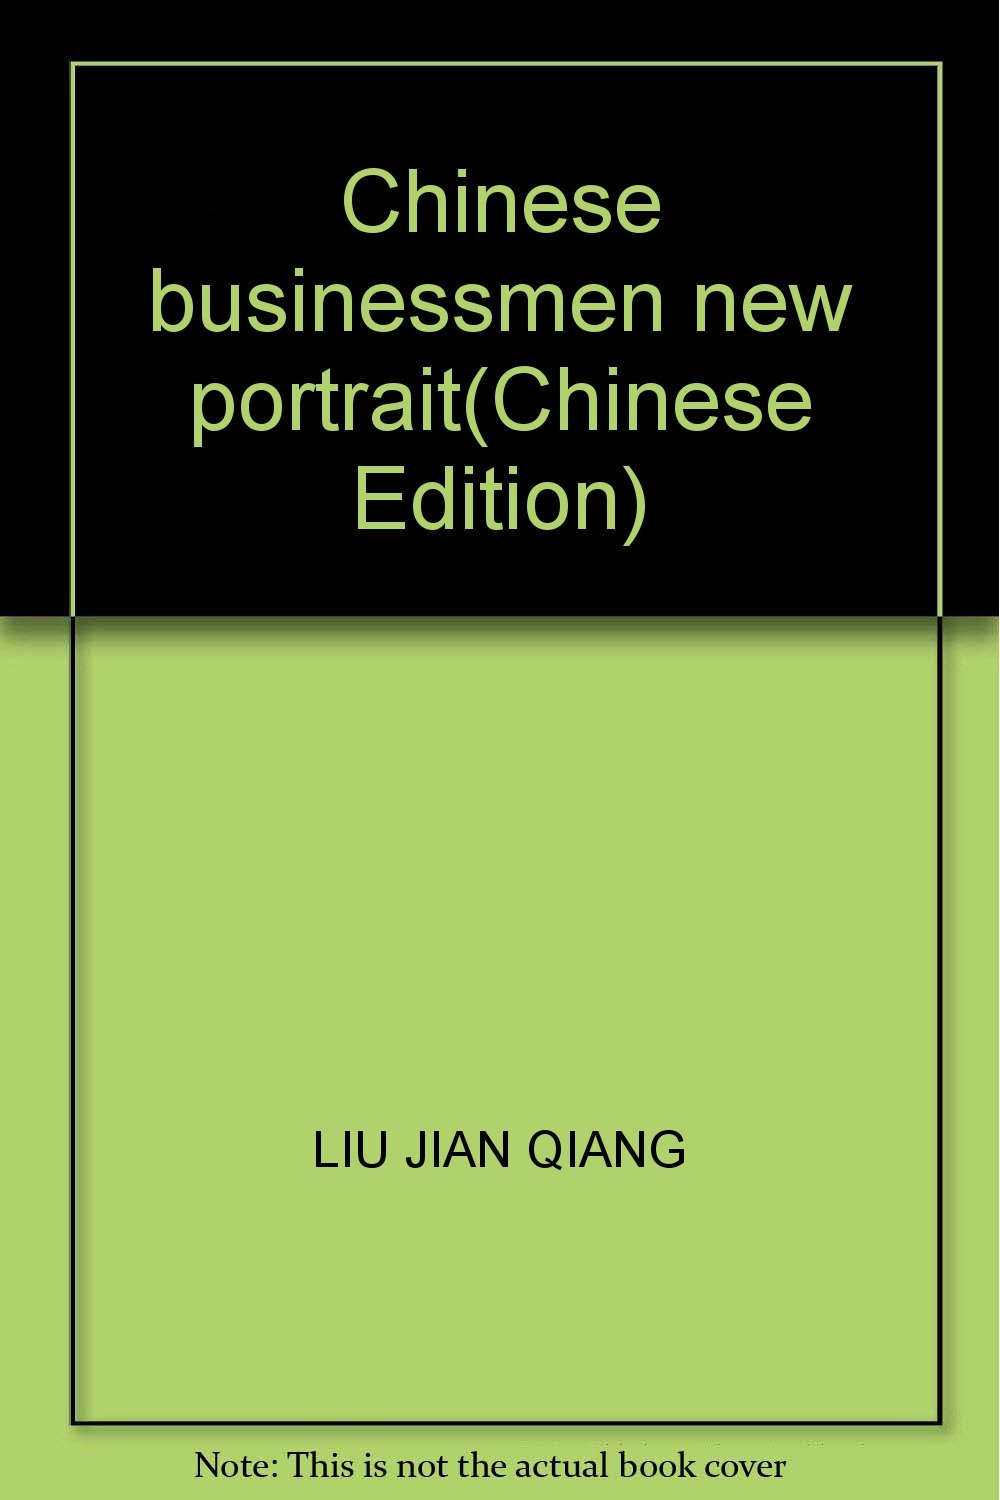 Chinese businessmen new portrait(Chinese Edition) ebook